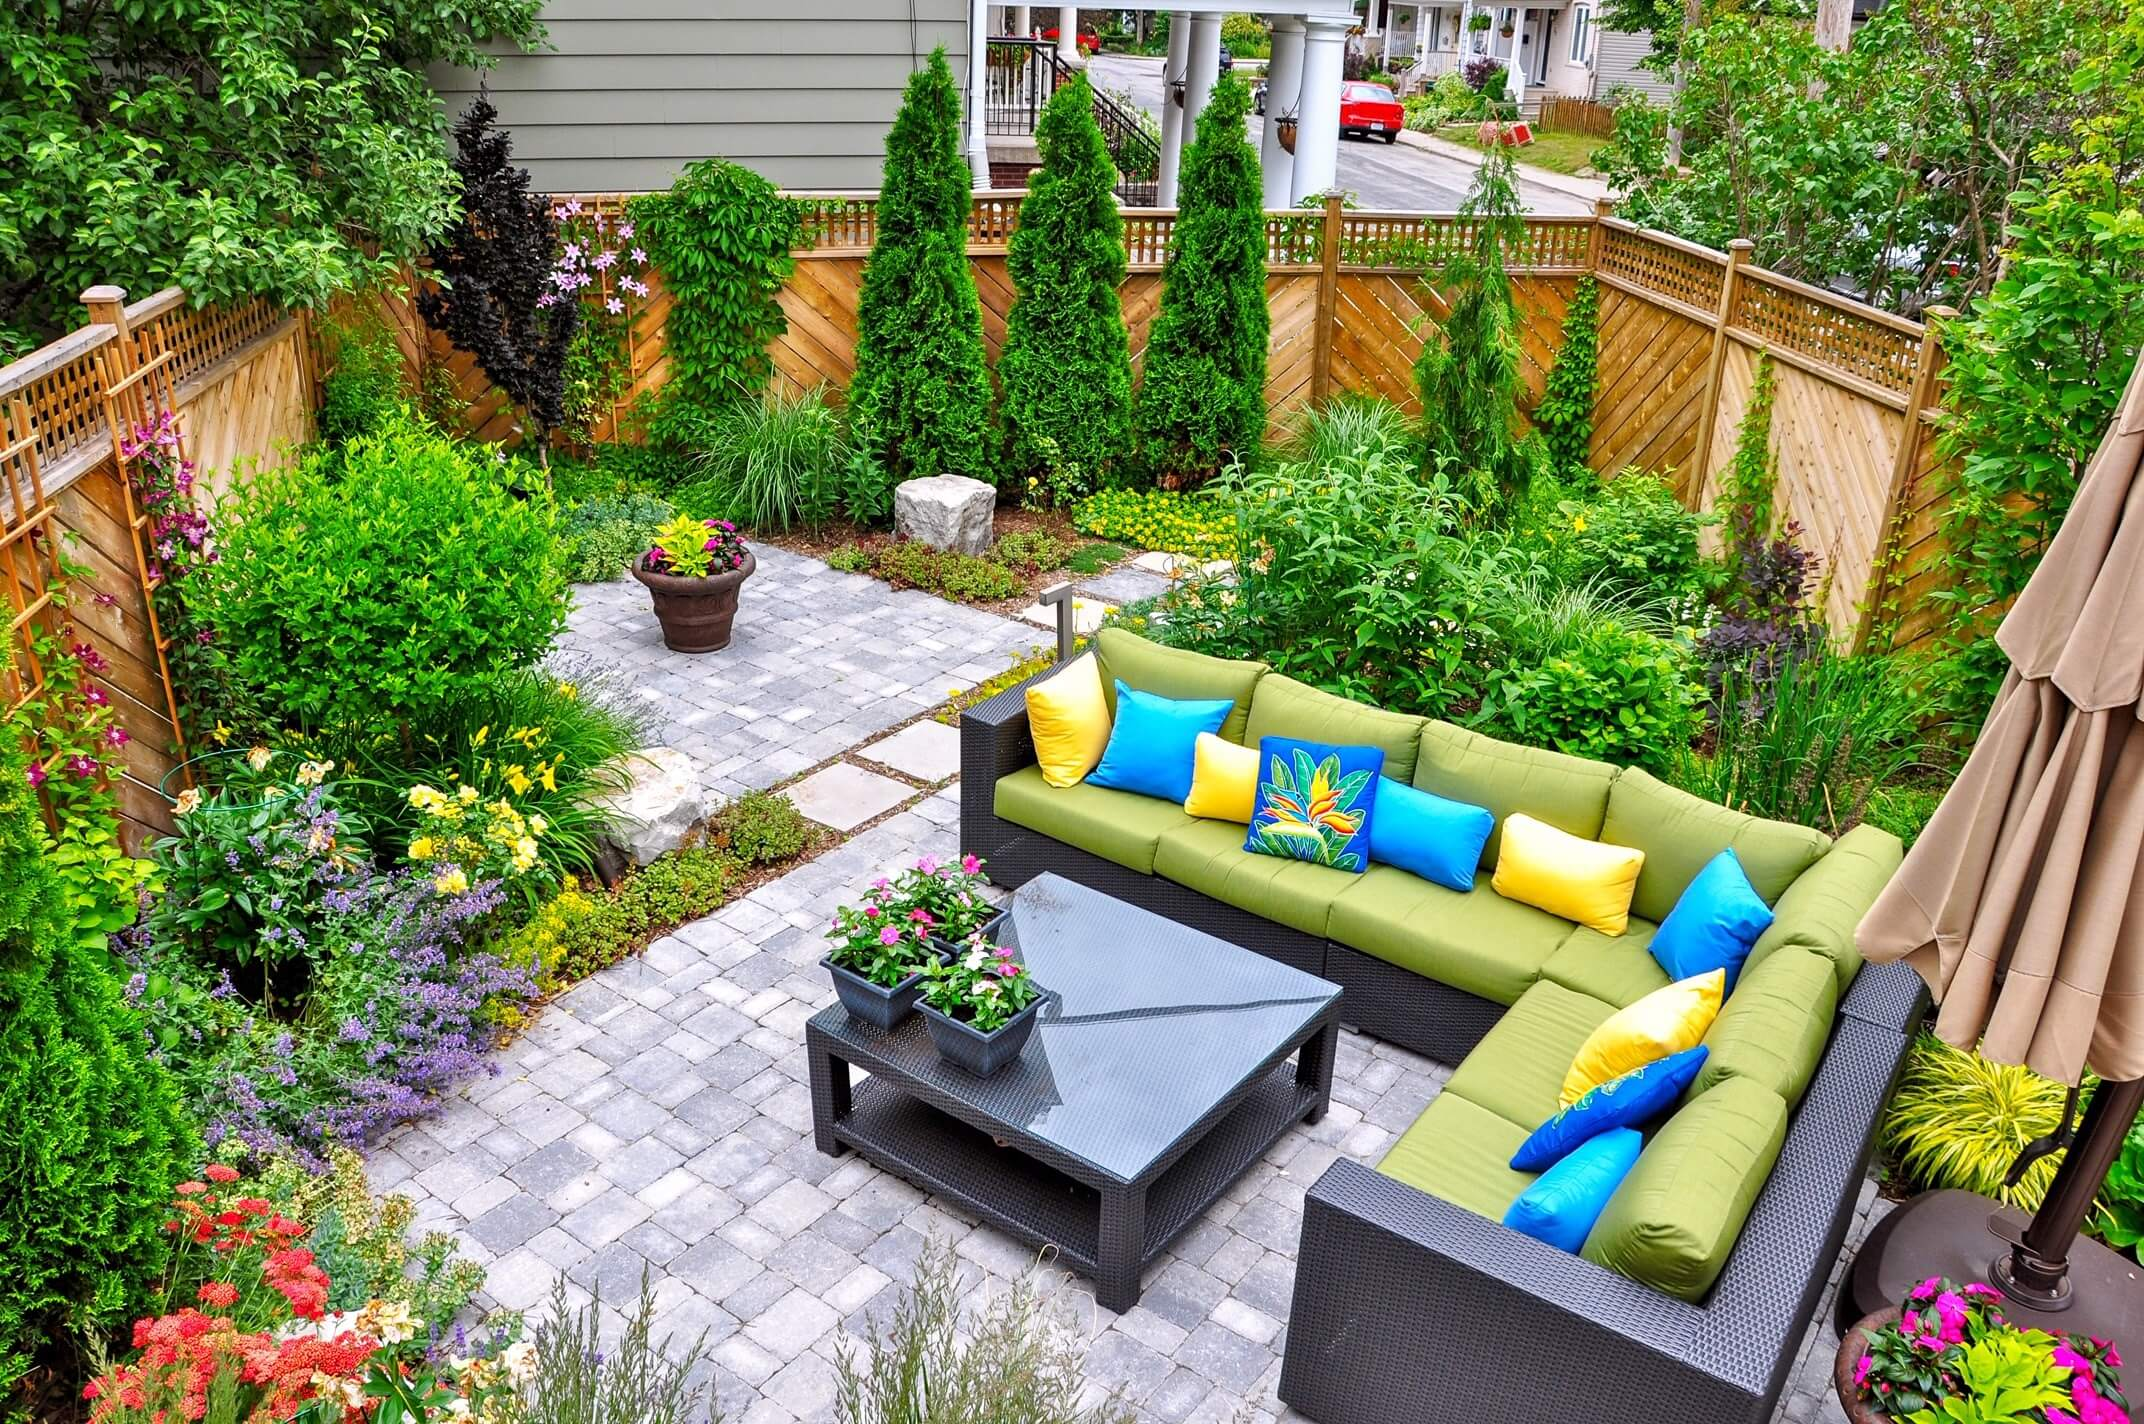 Top Tips for Landscaping with Colour